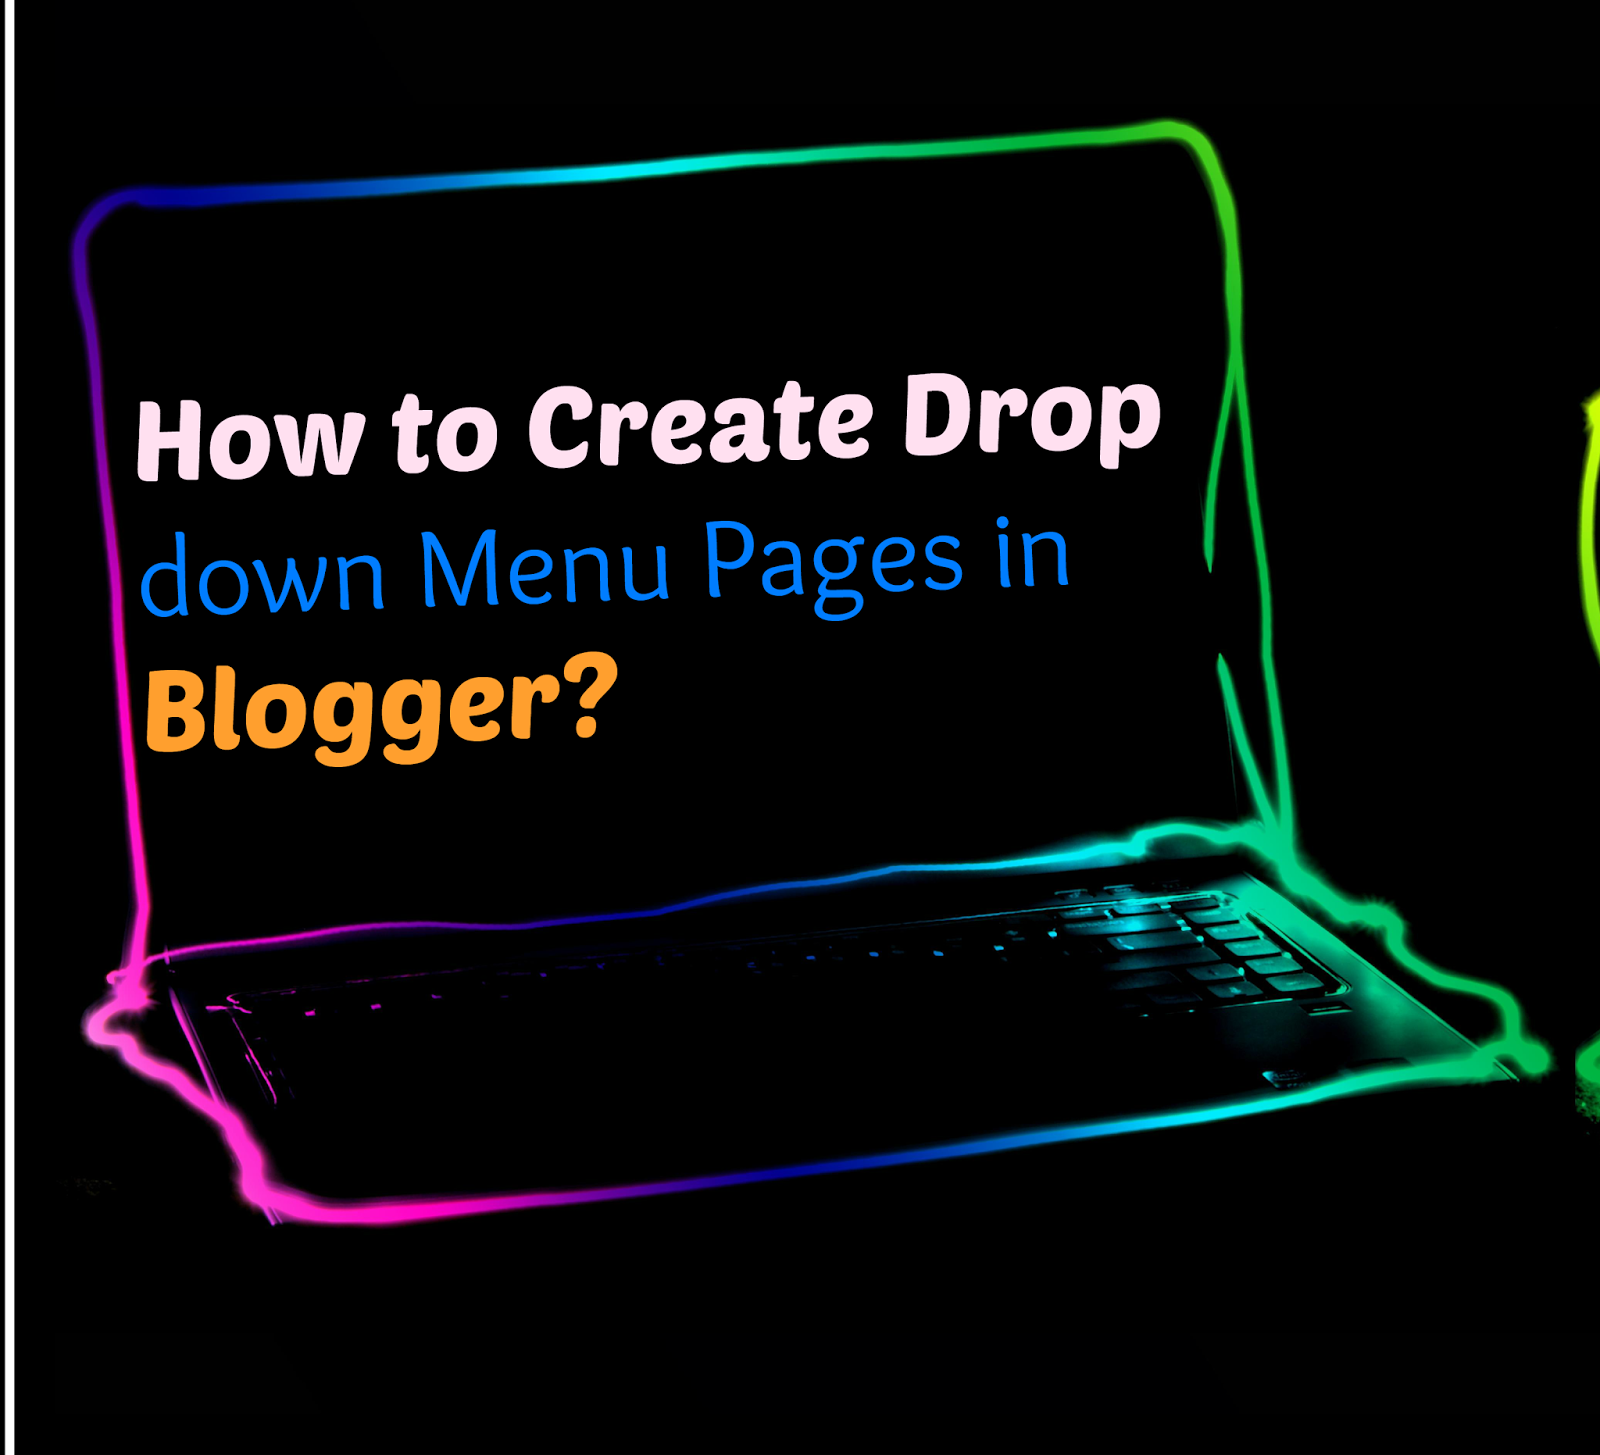 Drop down menu pages